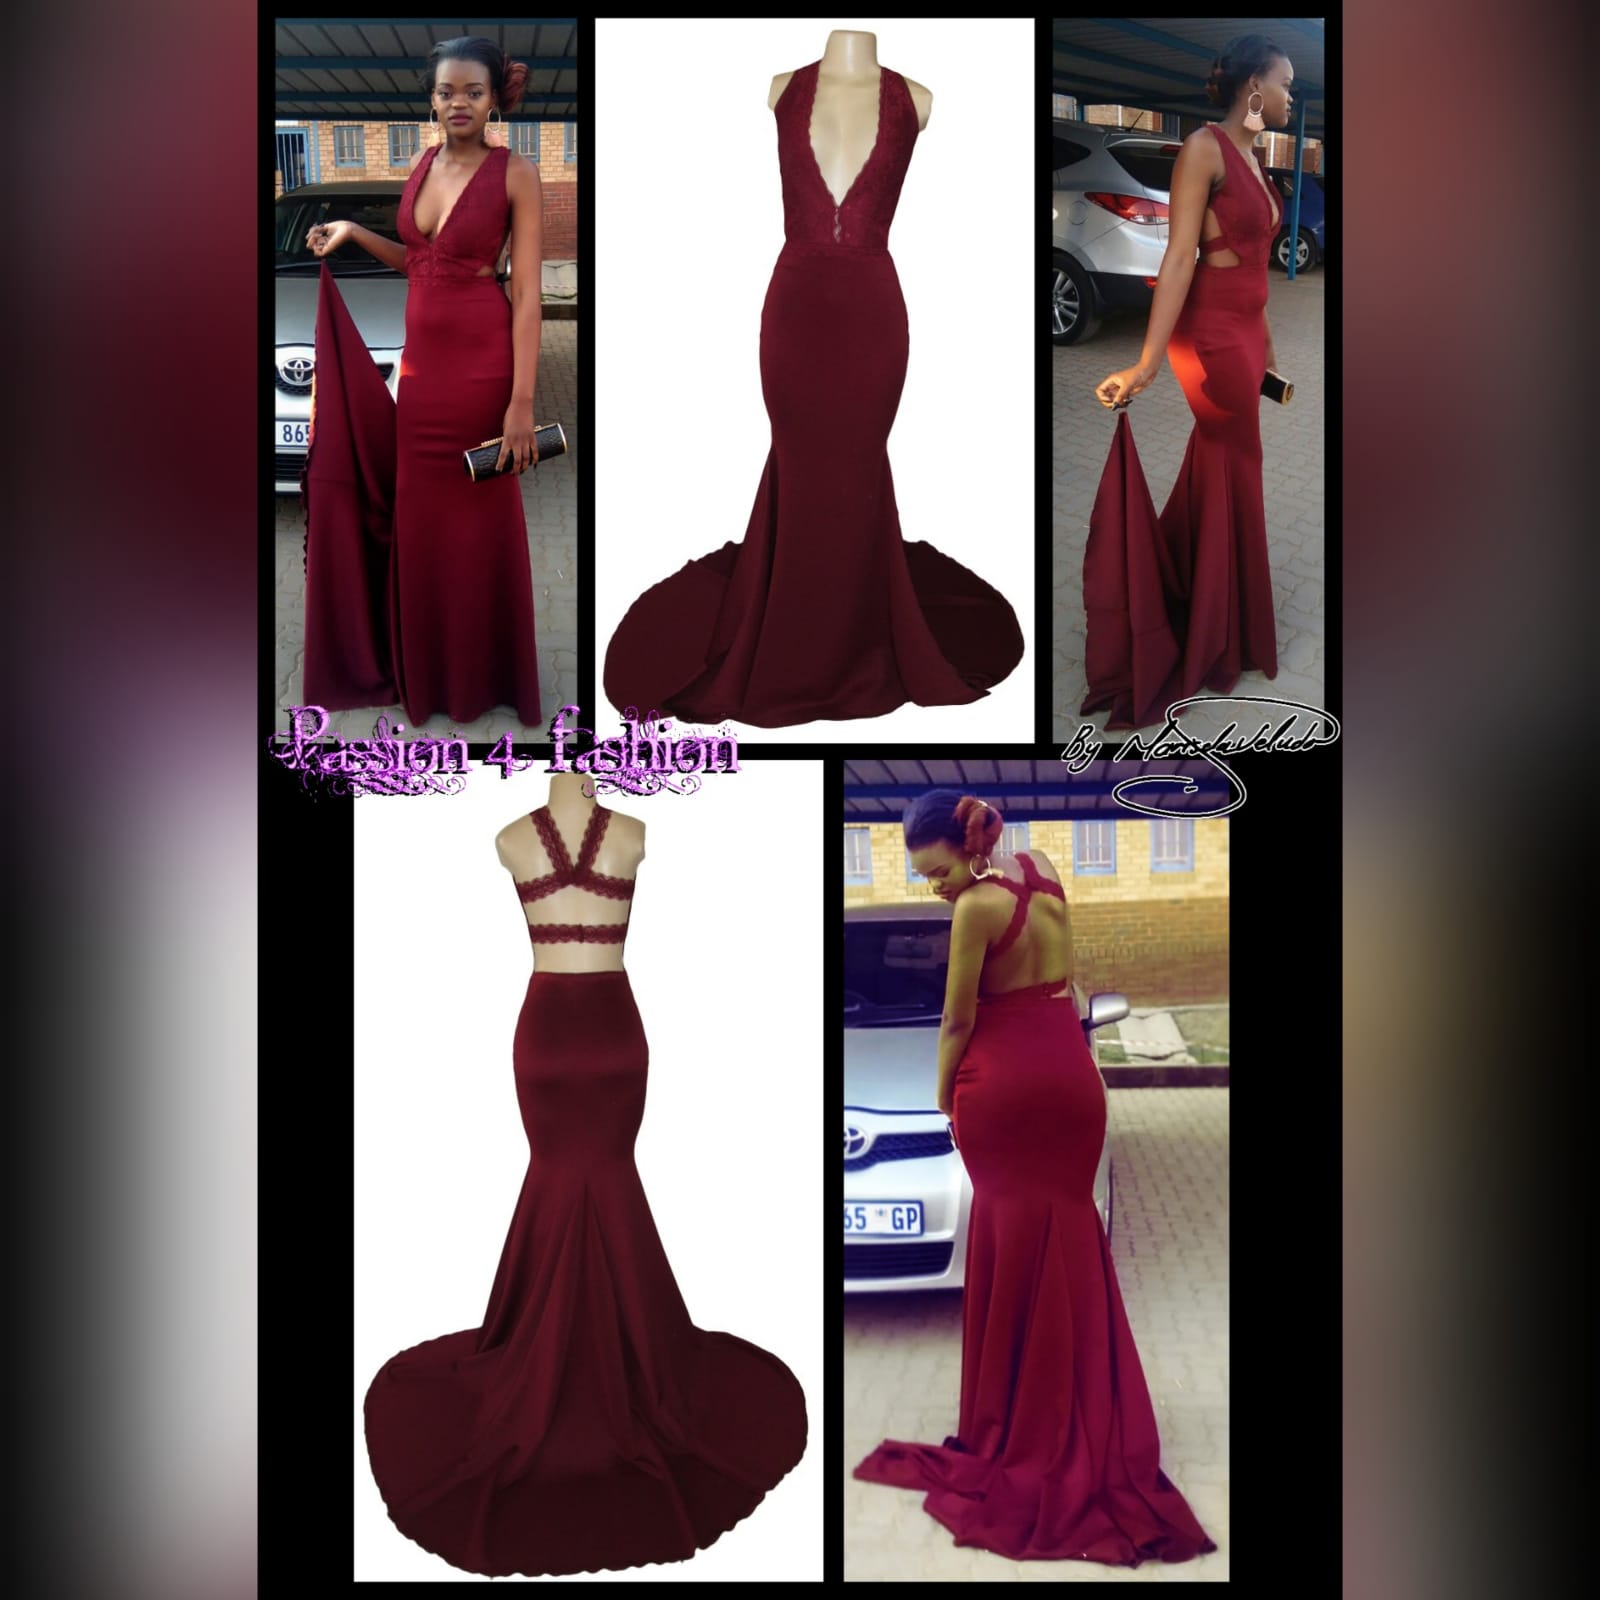 Maroon plunging neckline lace bodice matric dance dress 5 maroon plunging neckline lace bodice, soft mermaid matric dress with a train and an open back detailed with lace straps.